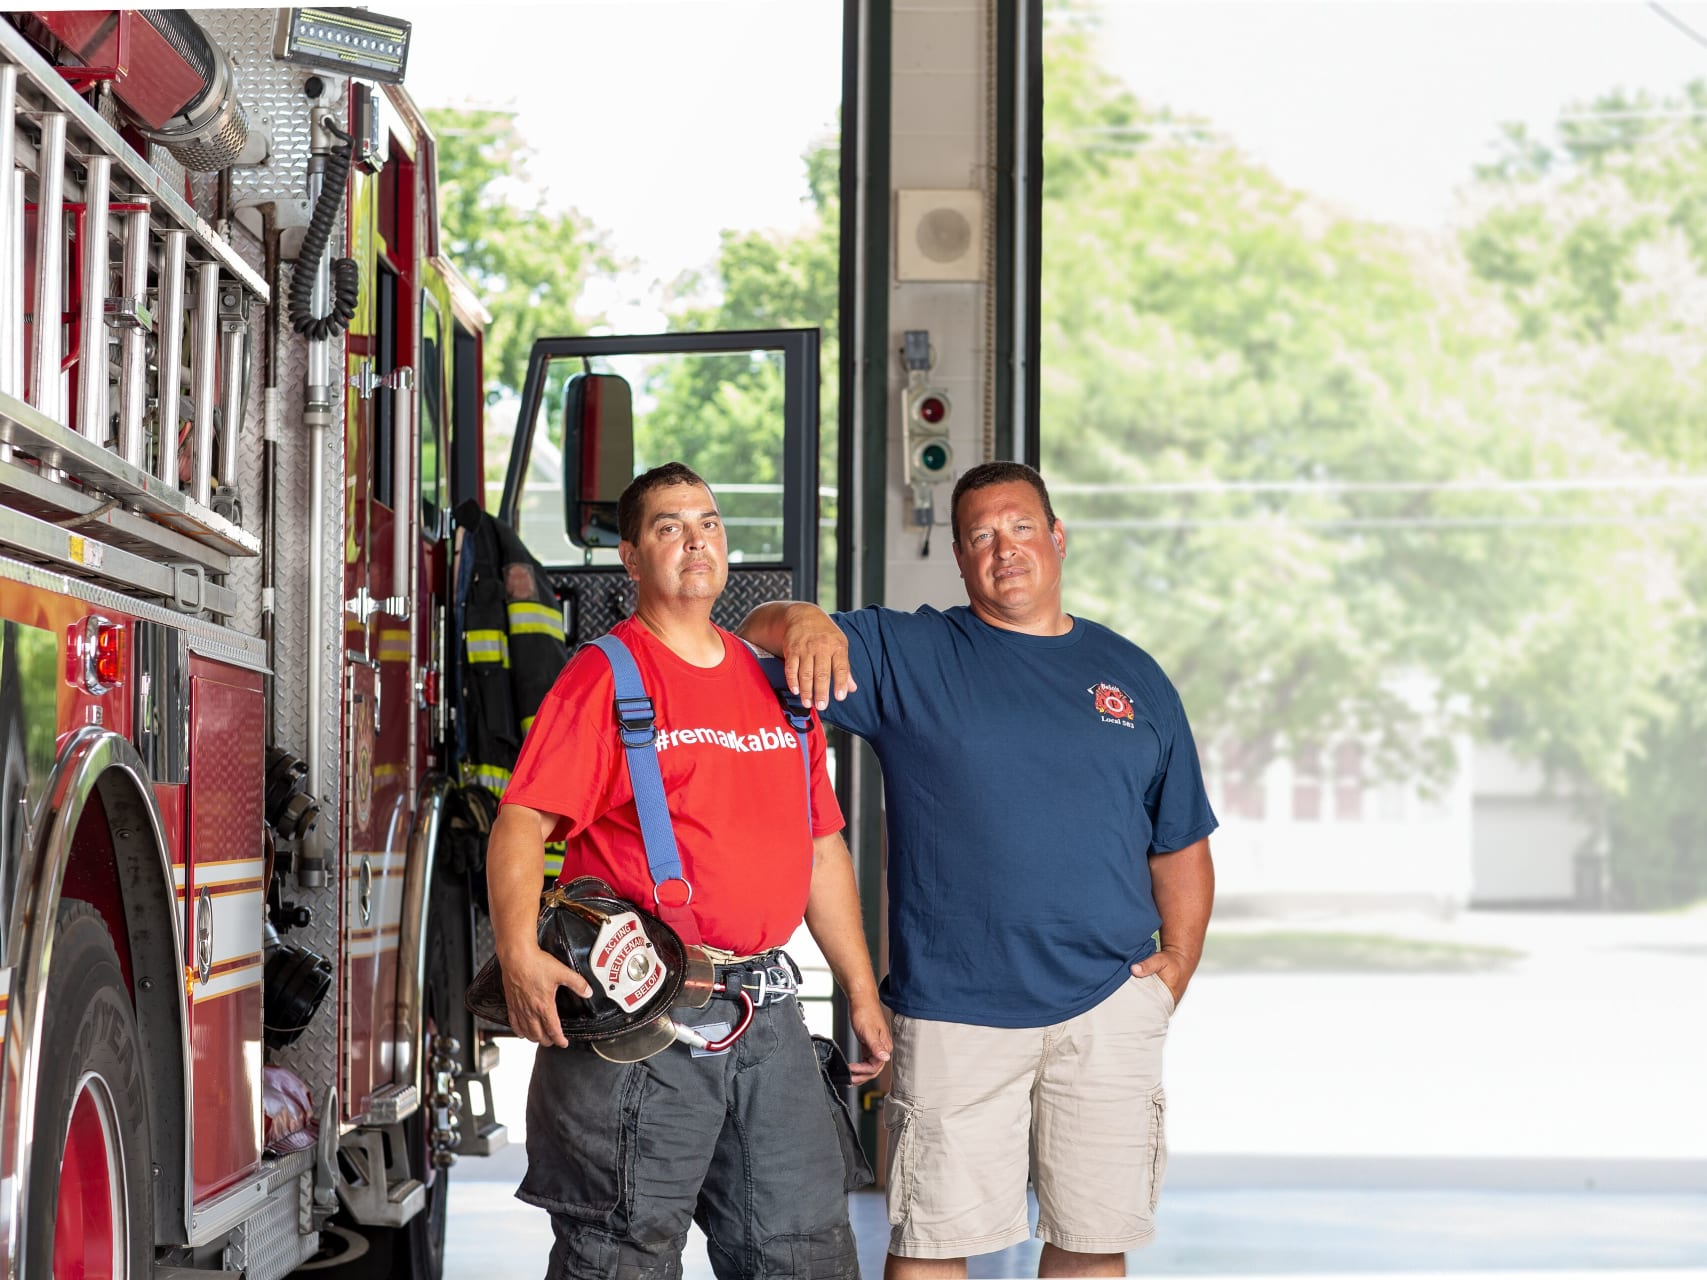 Two firefighters smiling in front of fire engine.